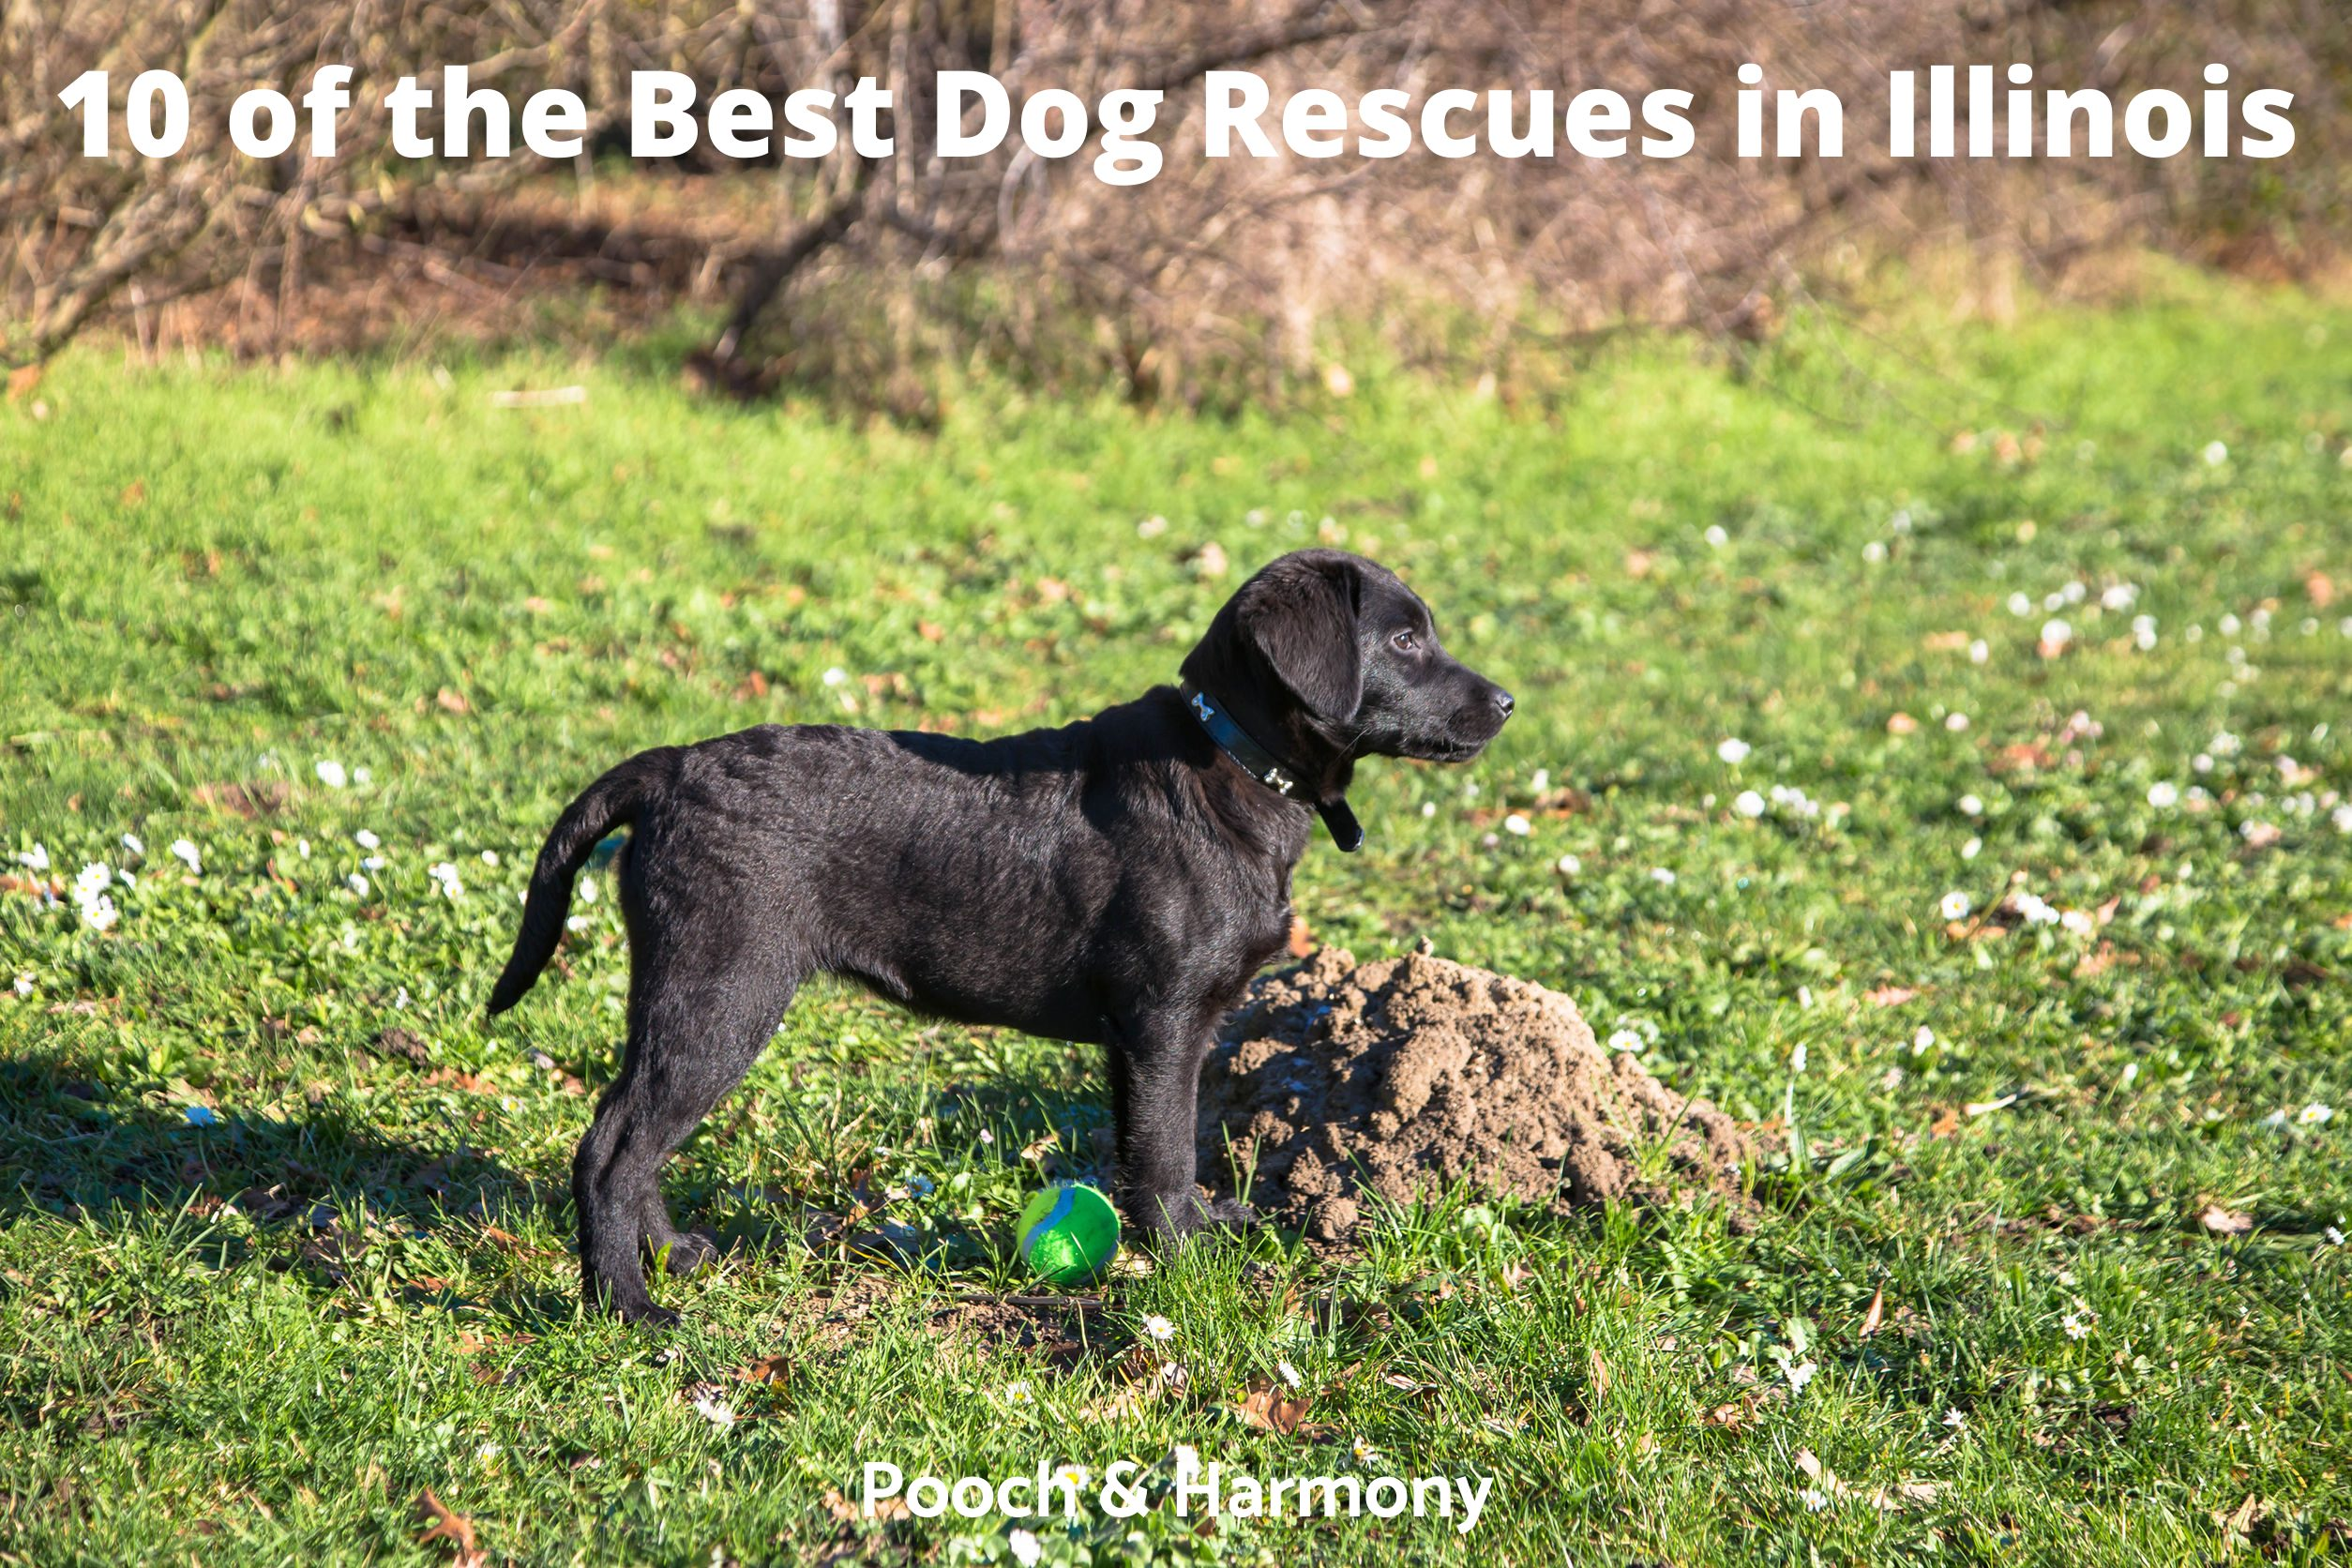 Best Dog Rescues in Illinois